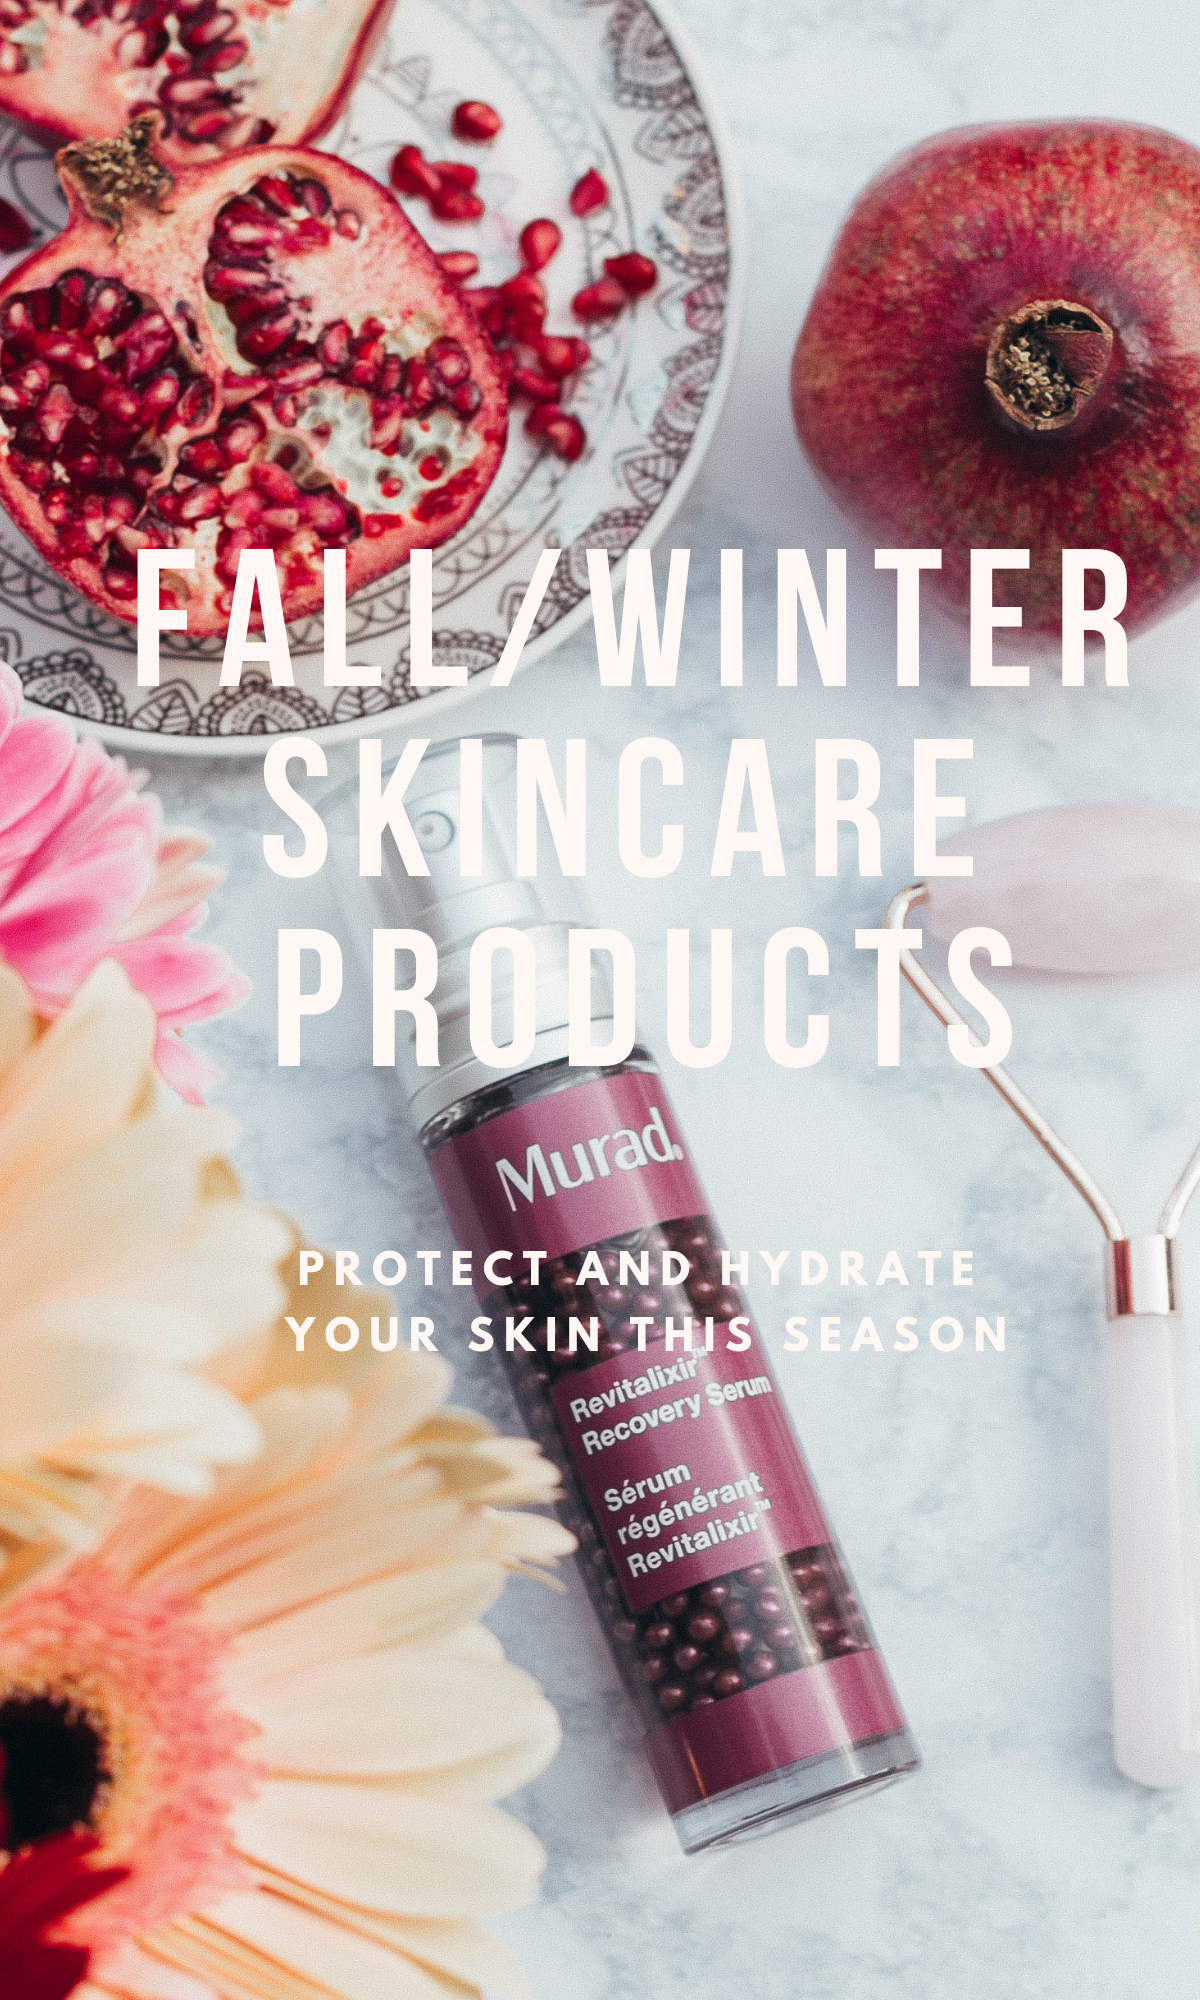 Face and Body Skincare Products for Cold Winter Weather